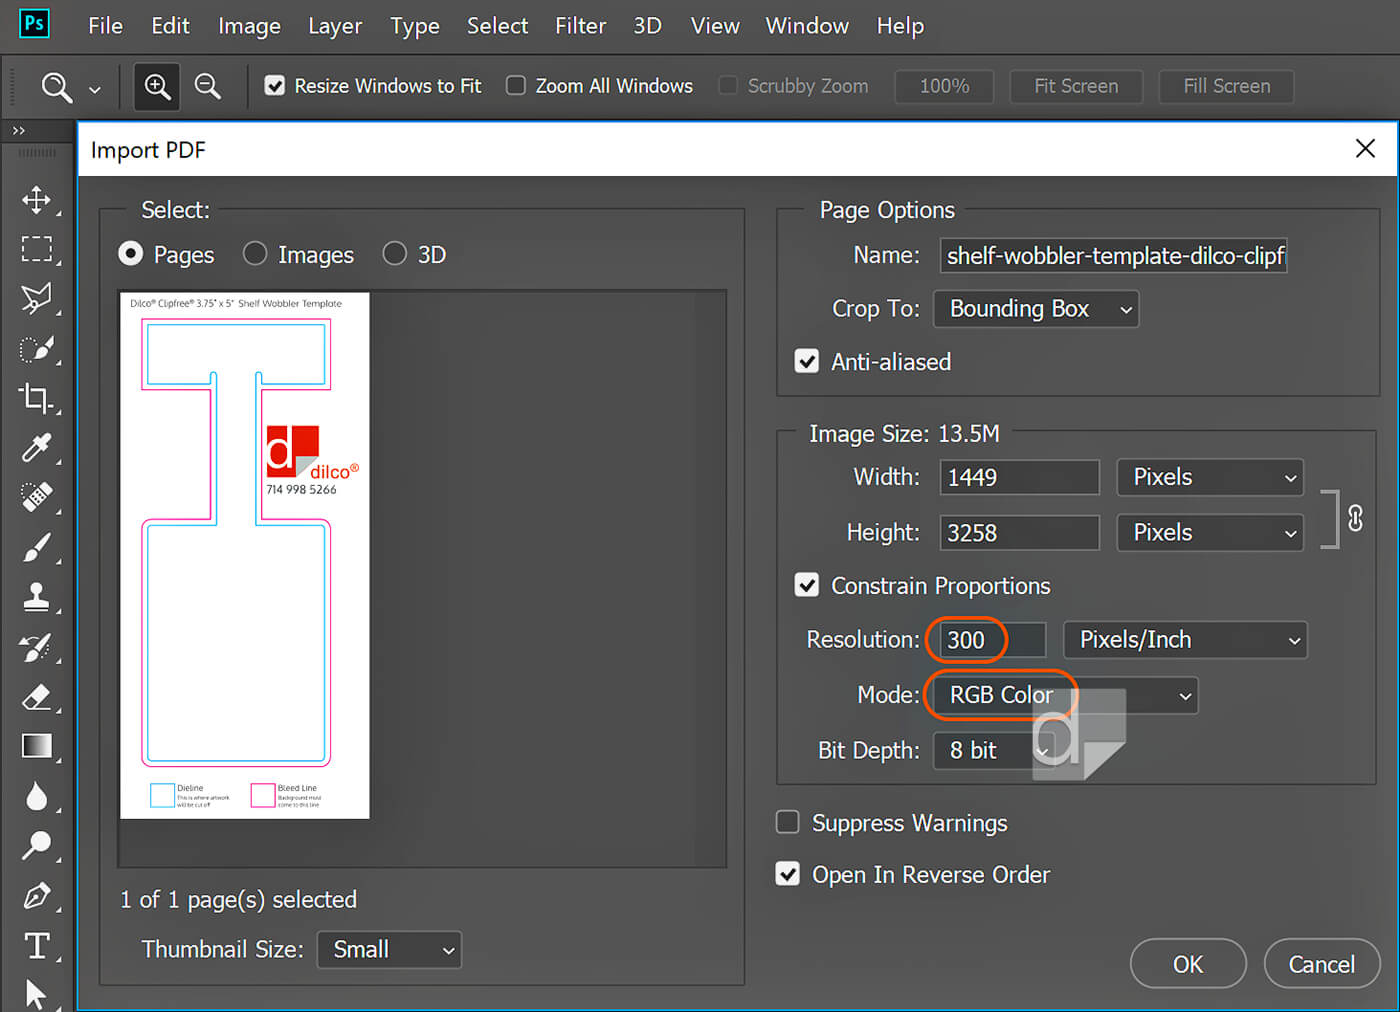 Screenshot of opening Dilco template in Photoshop at 300 ppi in RGB color mode.